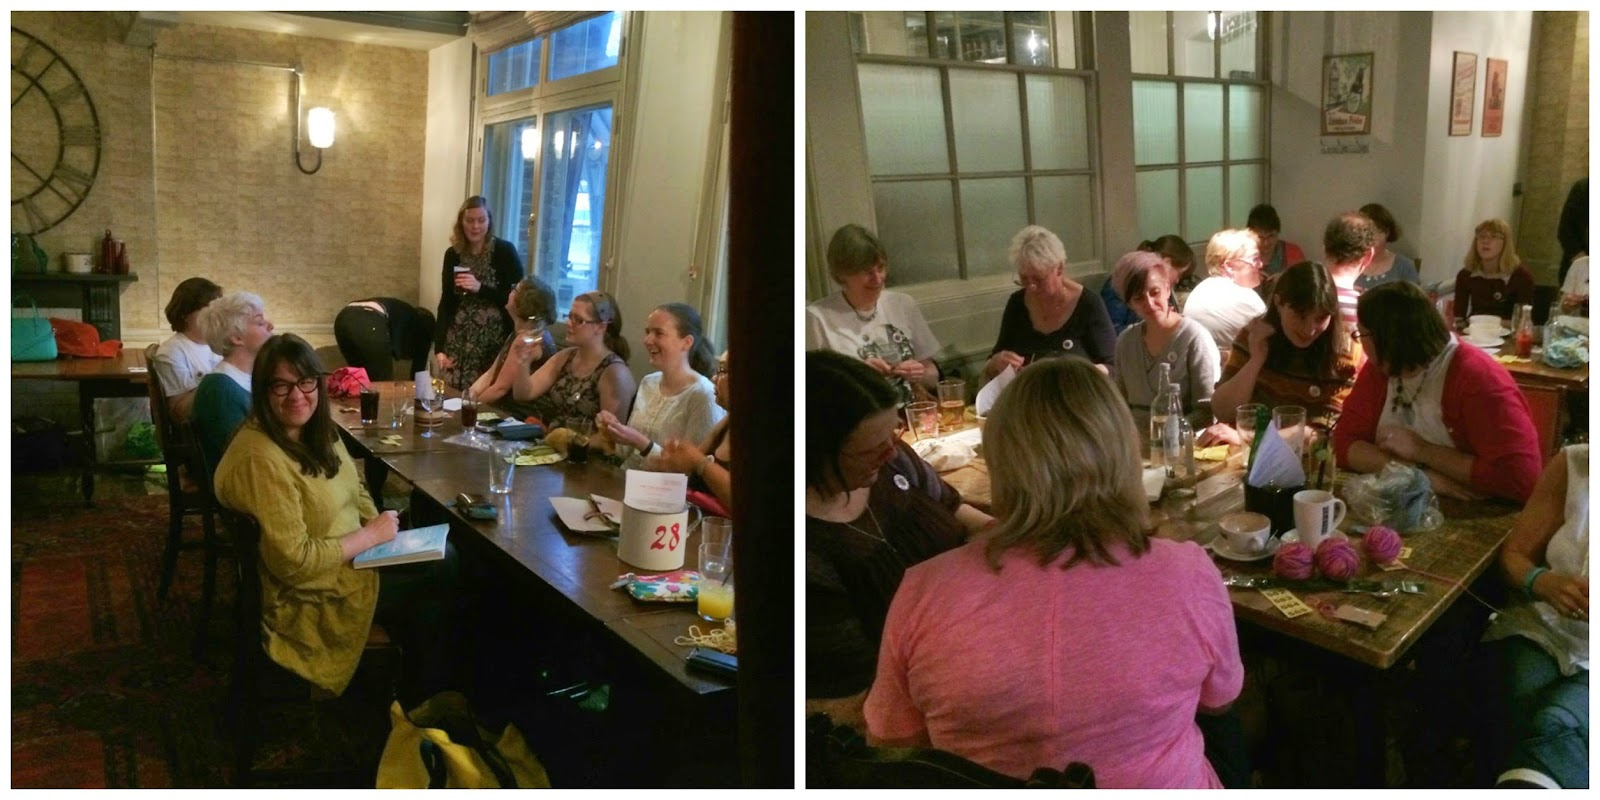 Lots of happy knitters and fibre enthusiasts knitting and chatting at the after-party